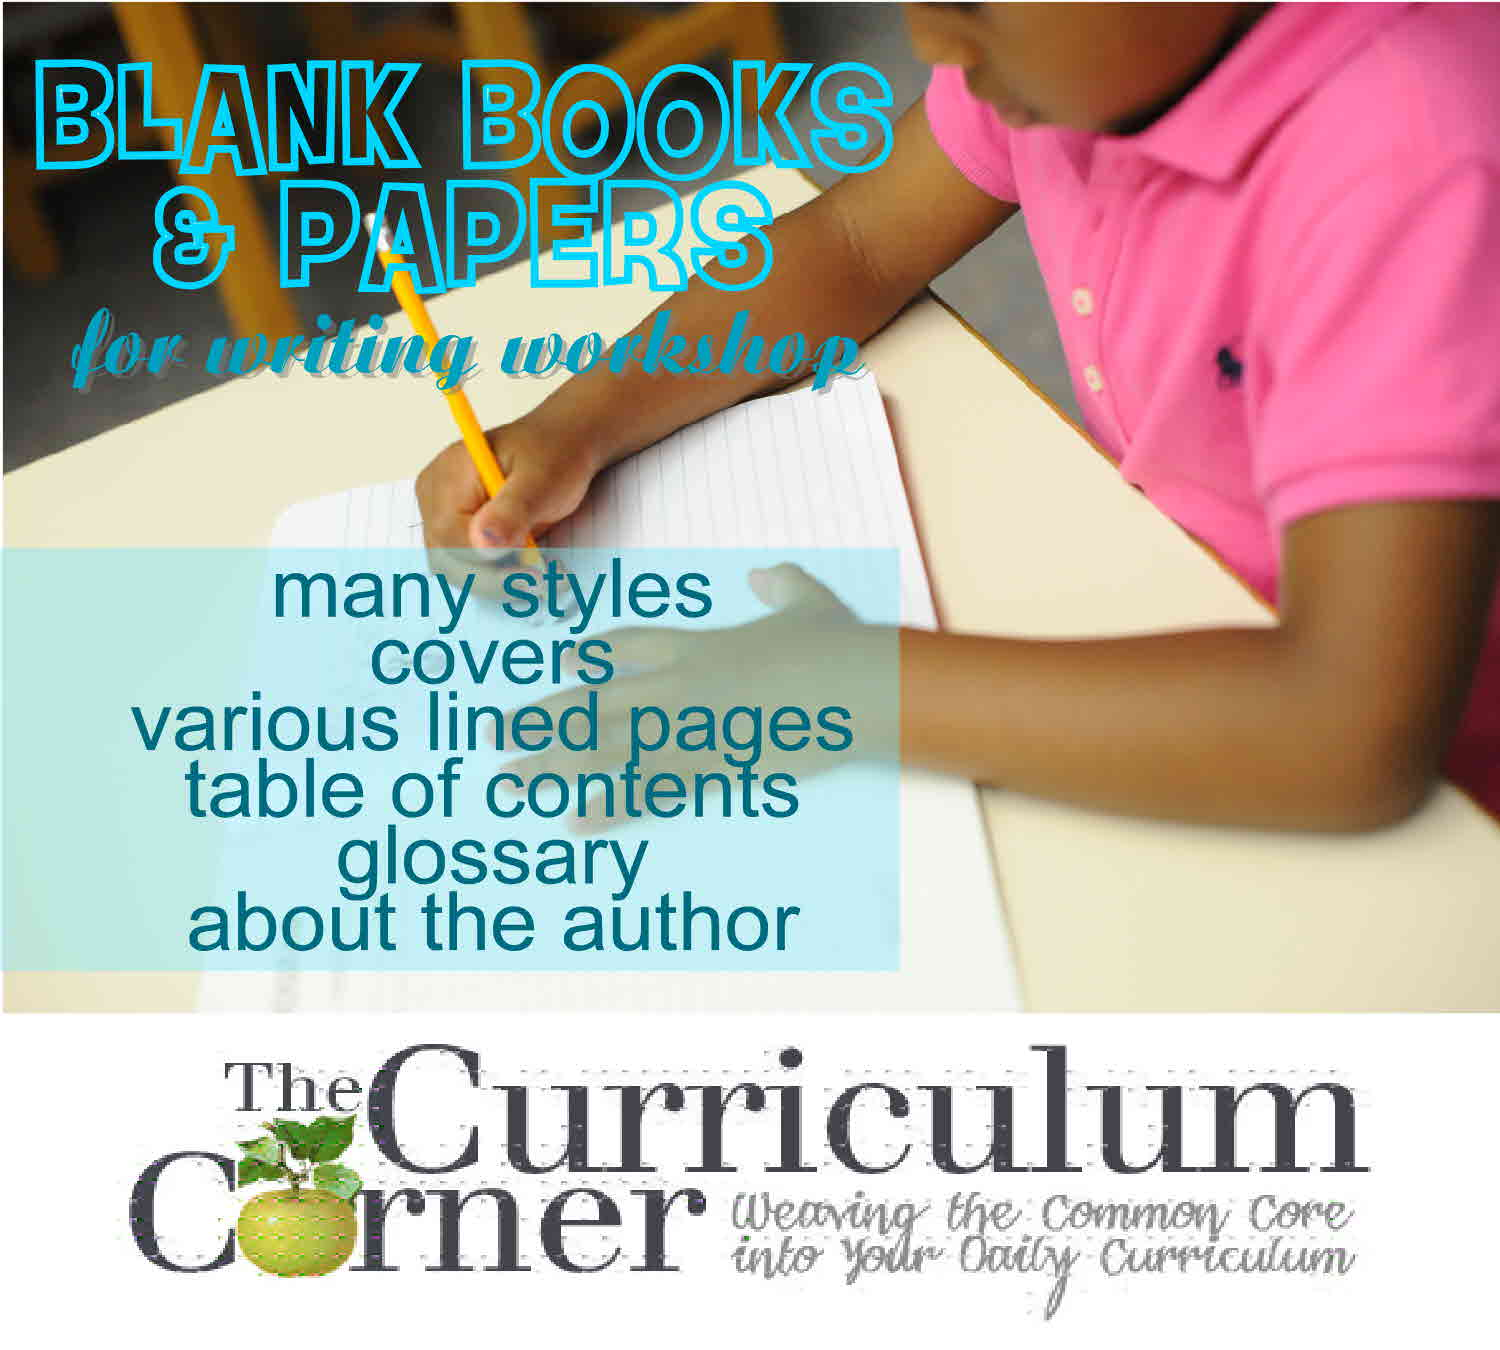 Blank Books & Papers for Writing Workshop